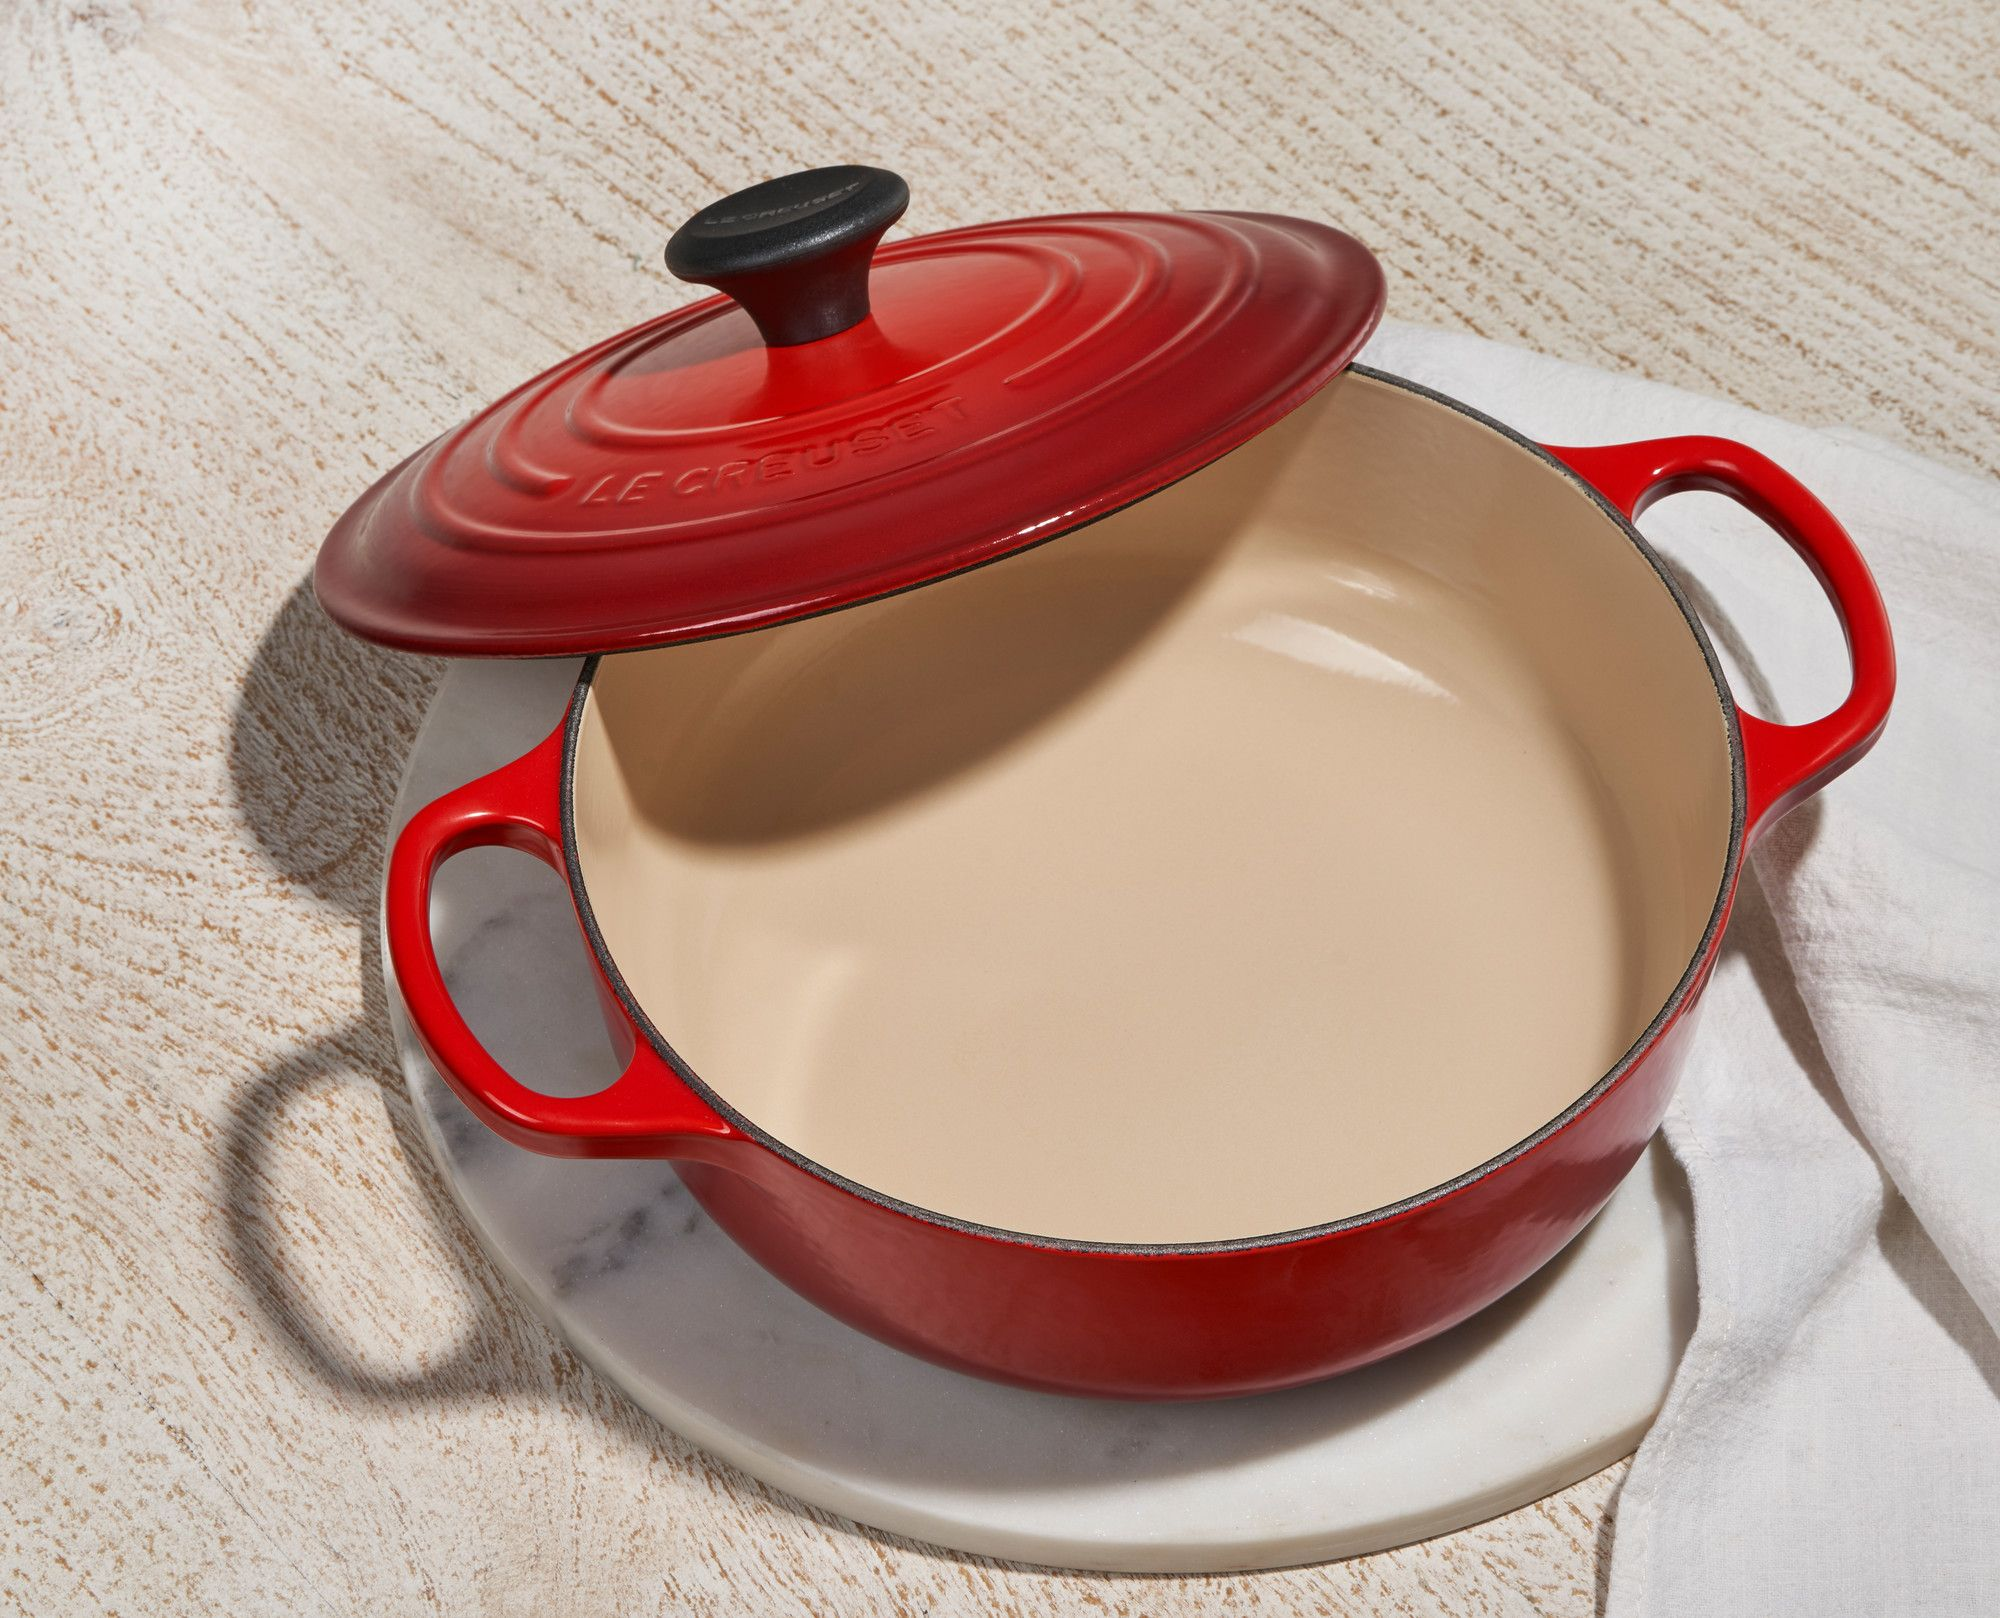 You Can Get A Le Creuset Cast Iron Sauteuse For 40 Percent Off On Wayfair